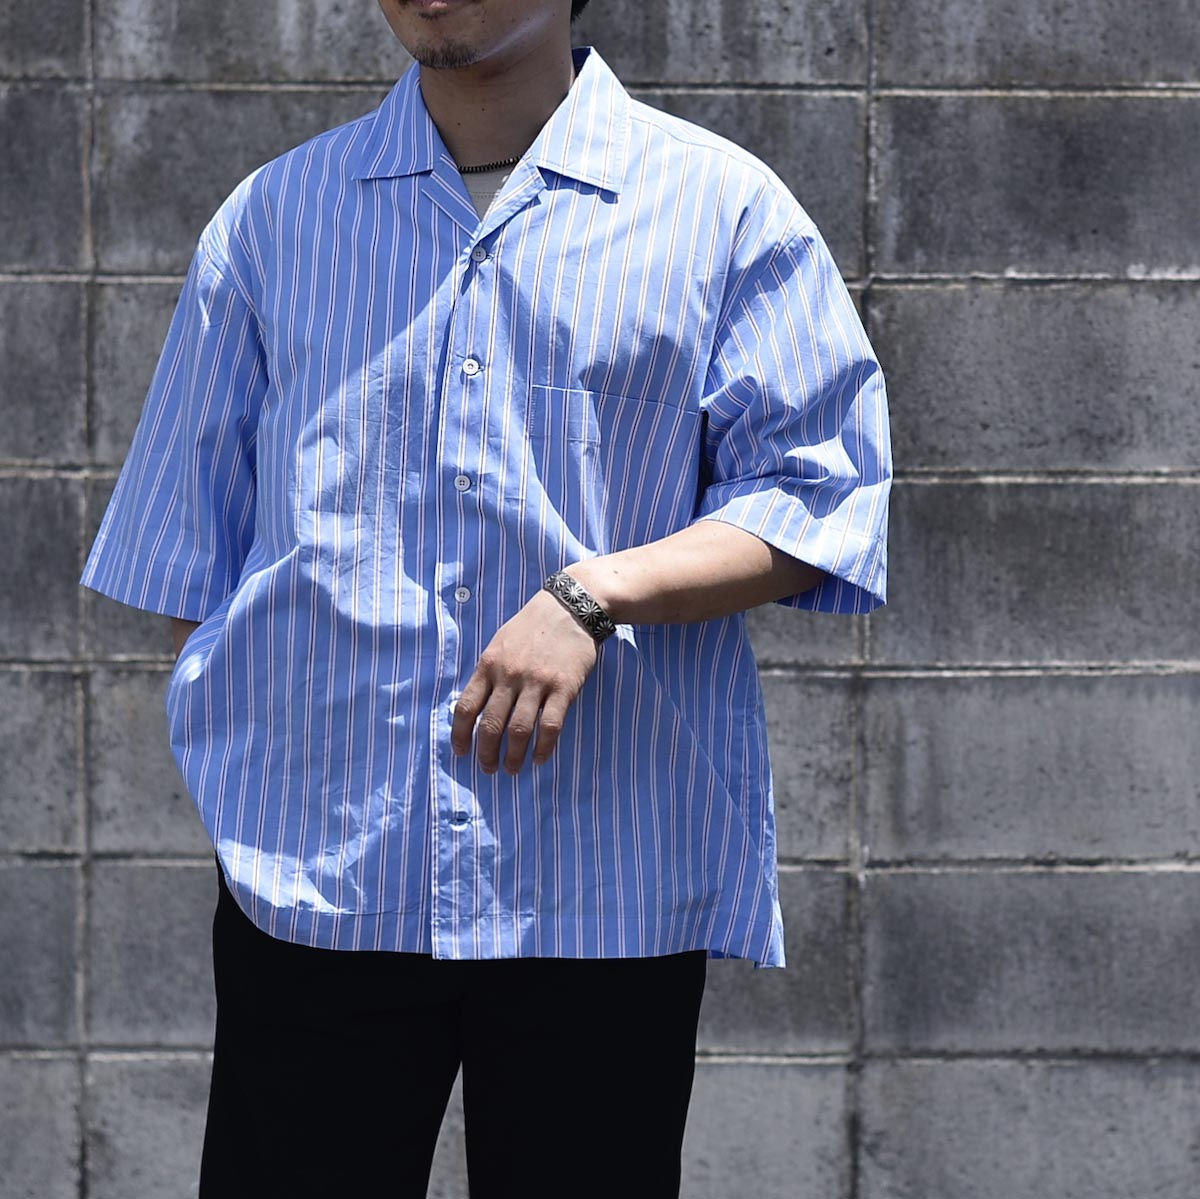 UNIVERSAL PRODUCTS /  STRIPE OPEN COLLAR S/S SHIRT (White Stripe)サイズ2着用